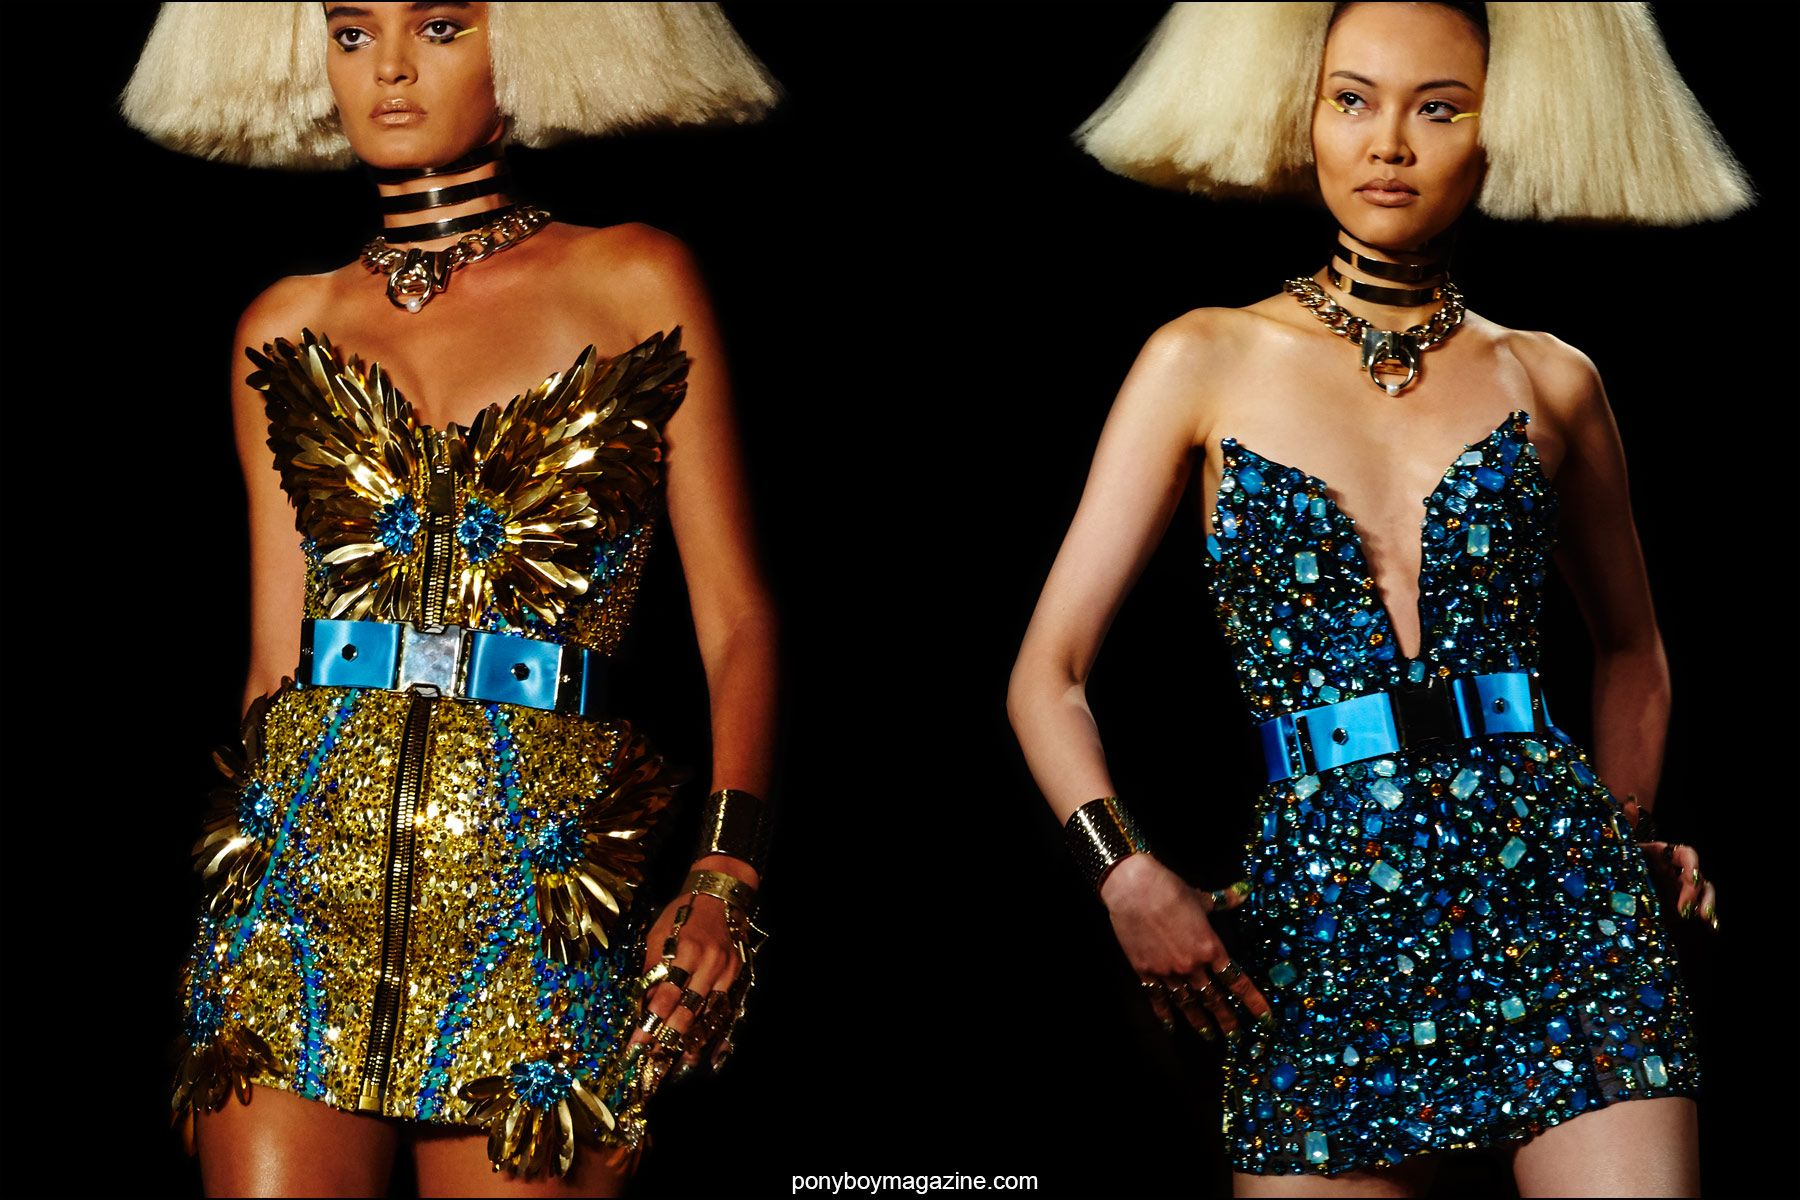 Fabulous creations on the Blonds Spring/Summer 2016 runway, photographed by Alexander Thompson for Ponyboy magazine NY.